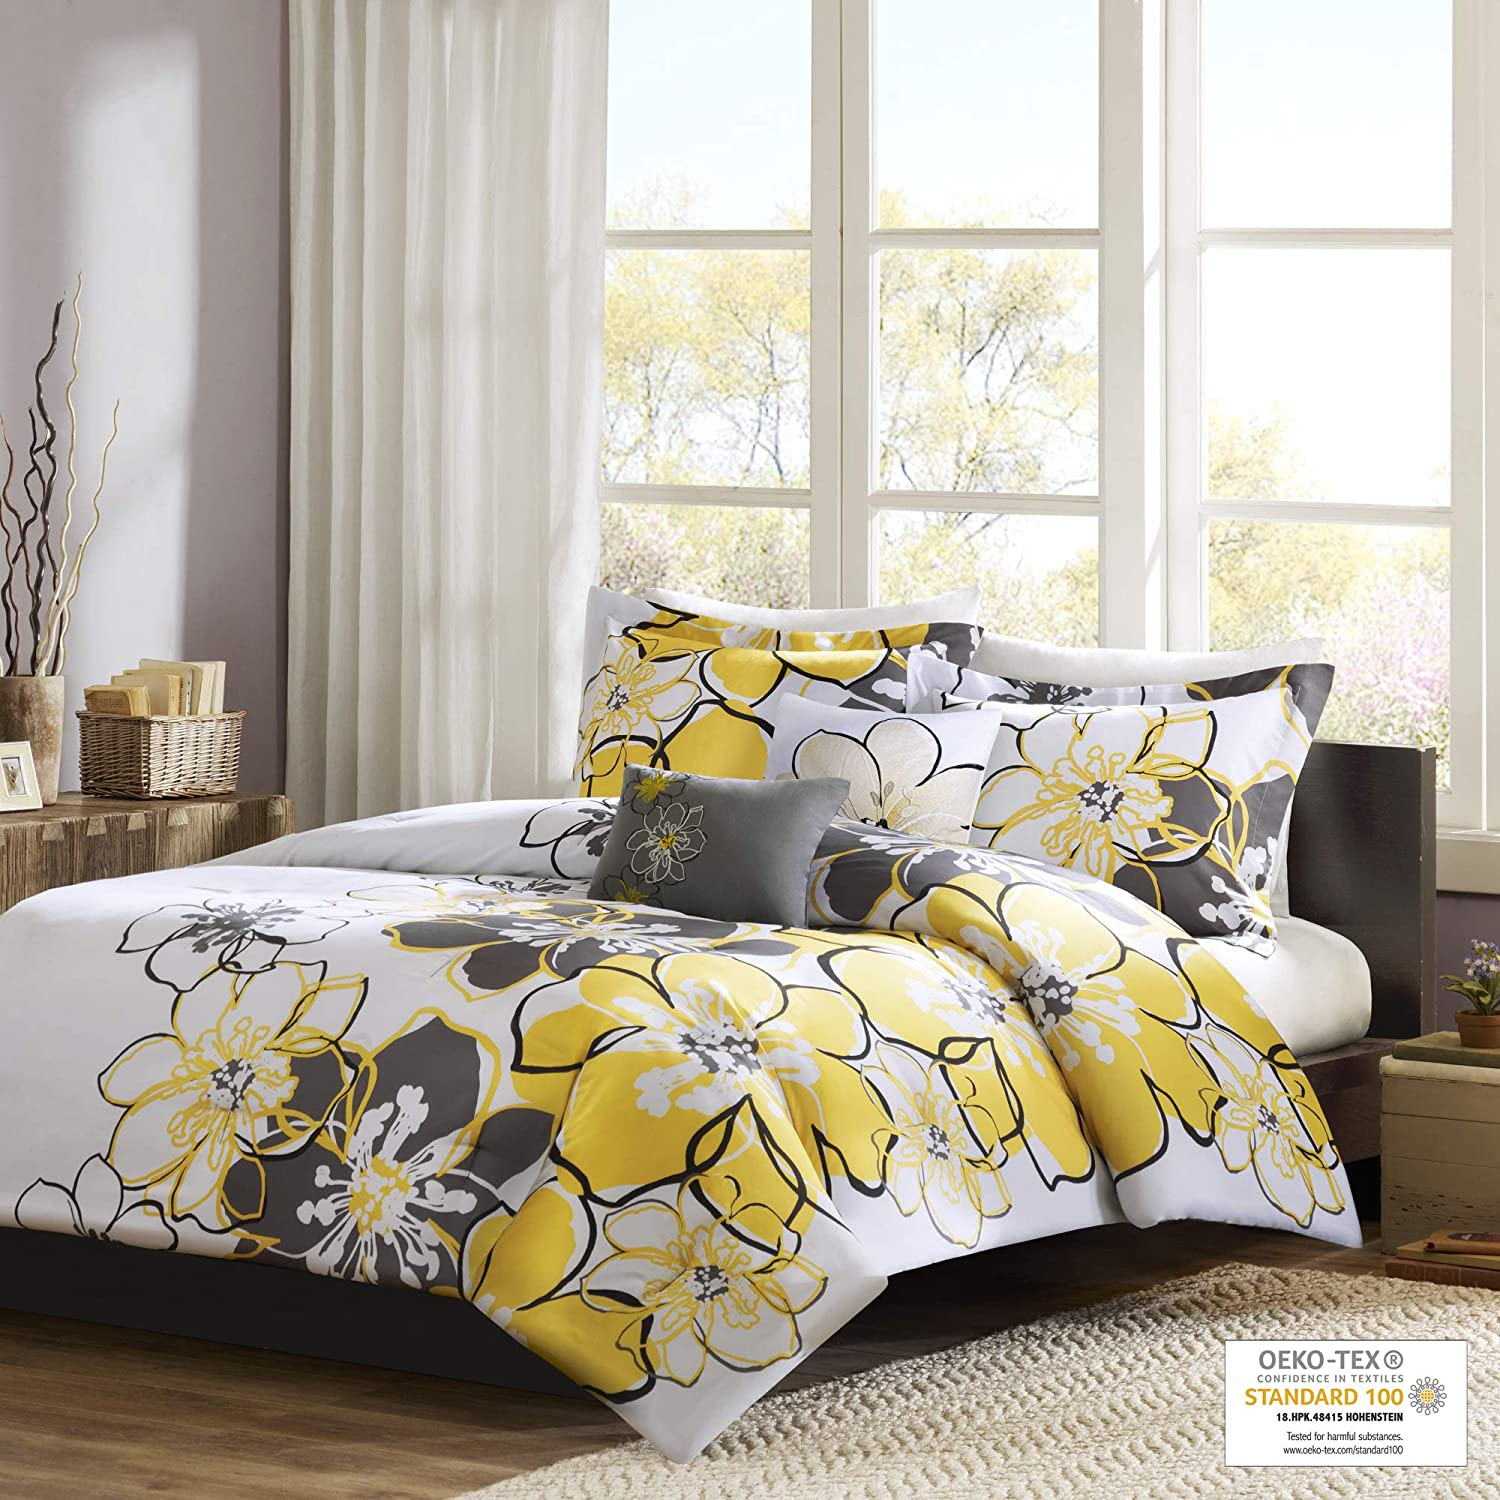 Mi Zone - Allison Comforter Set - Yellow - Full/Queen - Floral Pattern - Includes 1 Comforter, 1 Decorative Pillow, 2 Sham